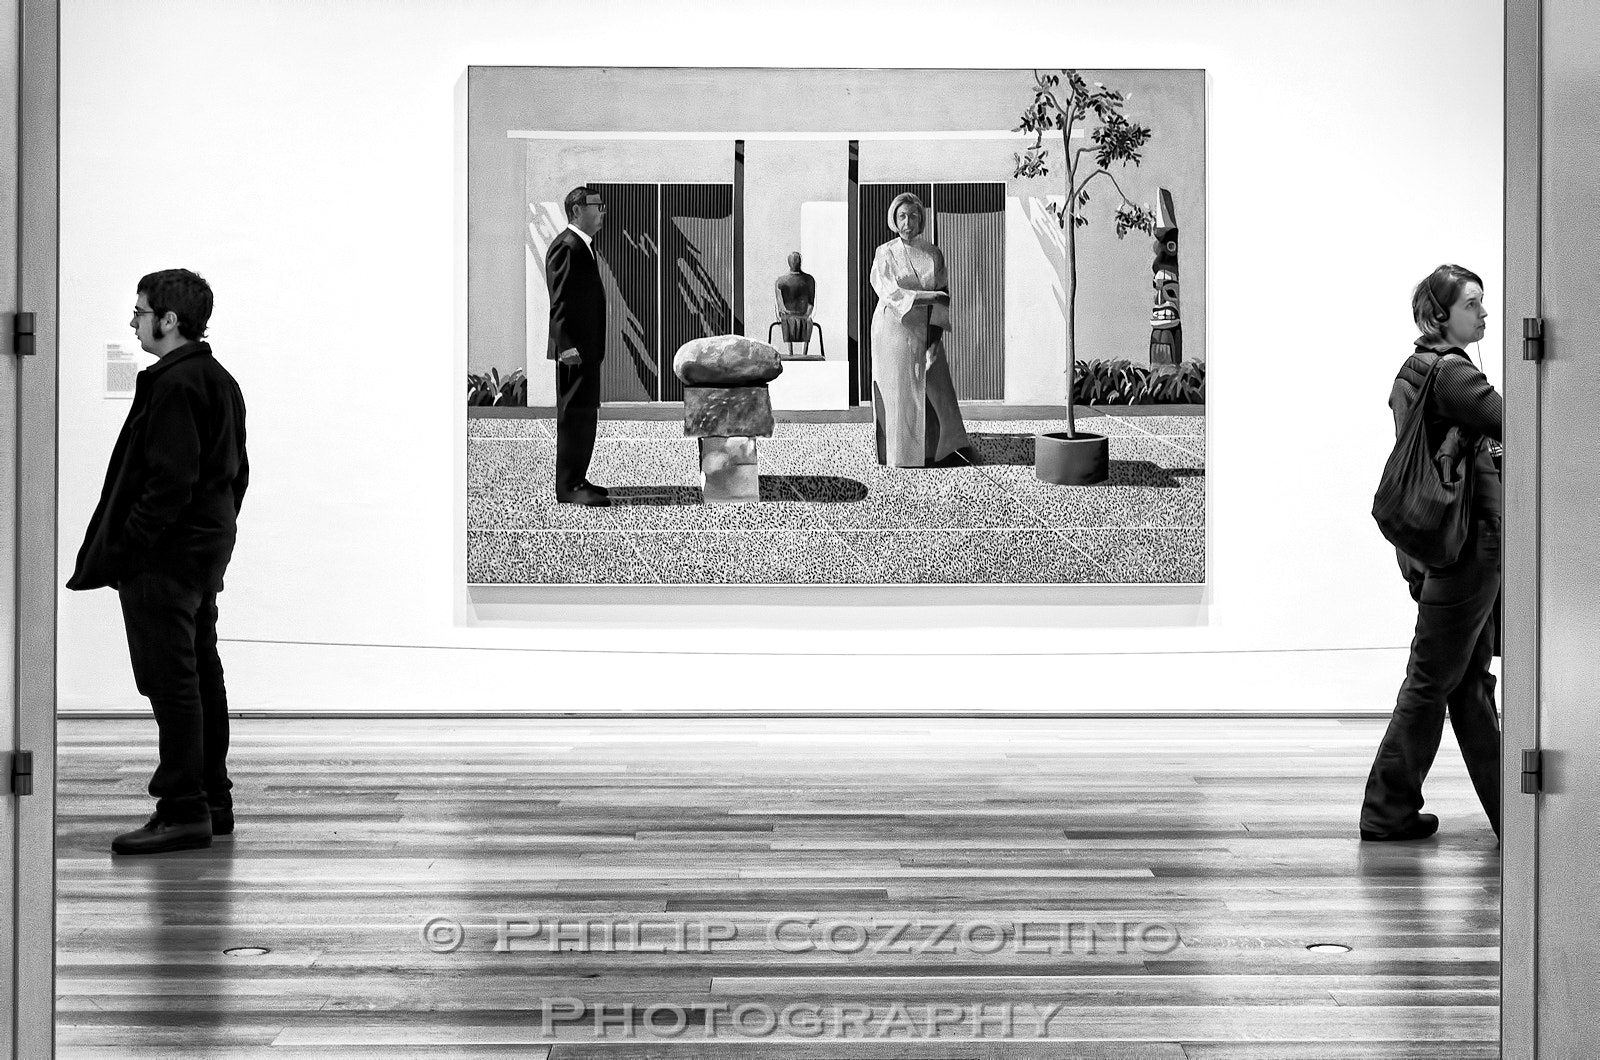 Photograph Art Couples by Philip Cozzolino on 500px